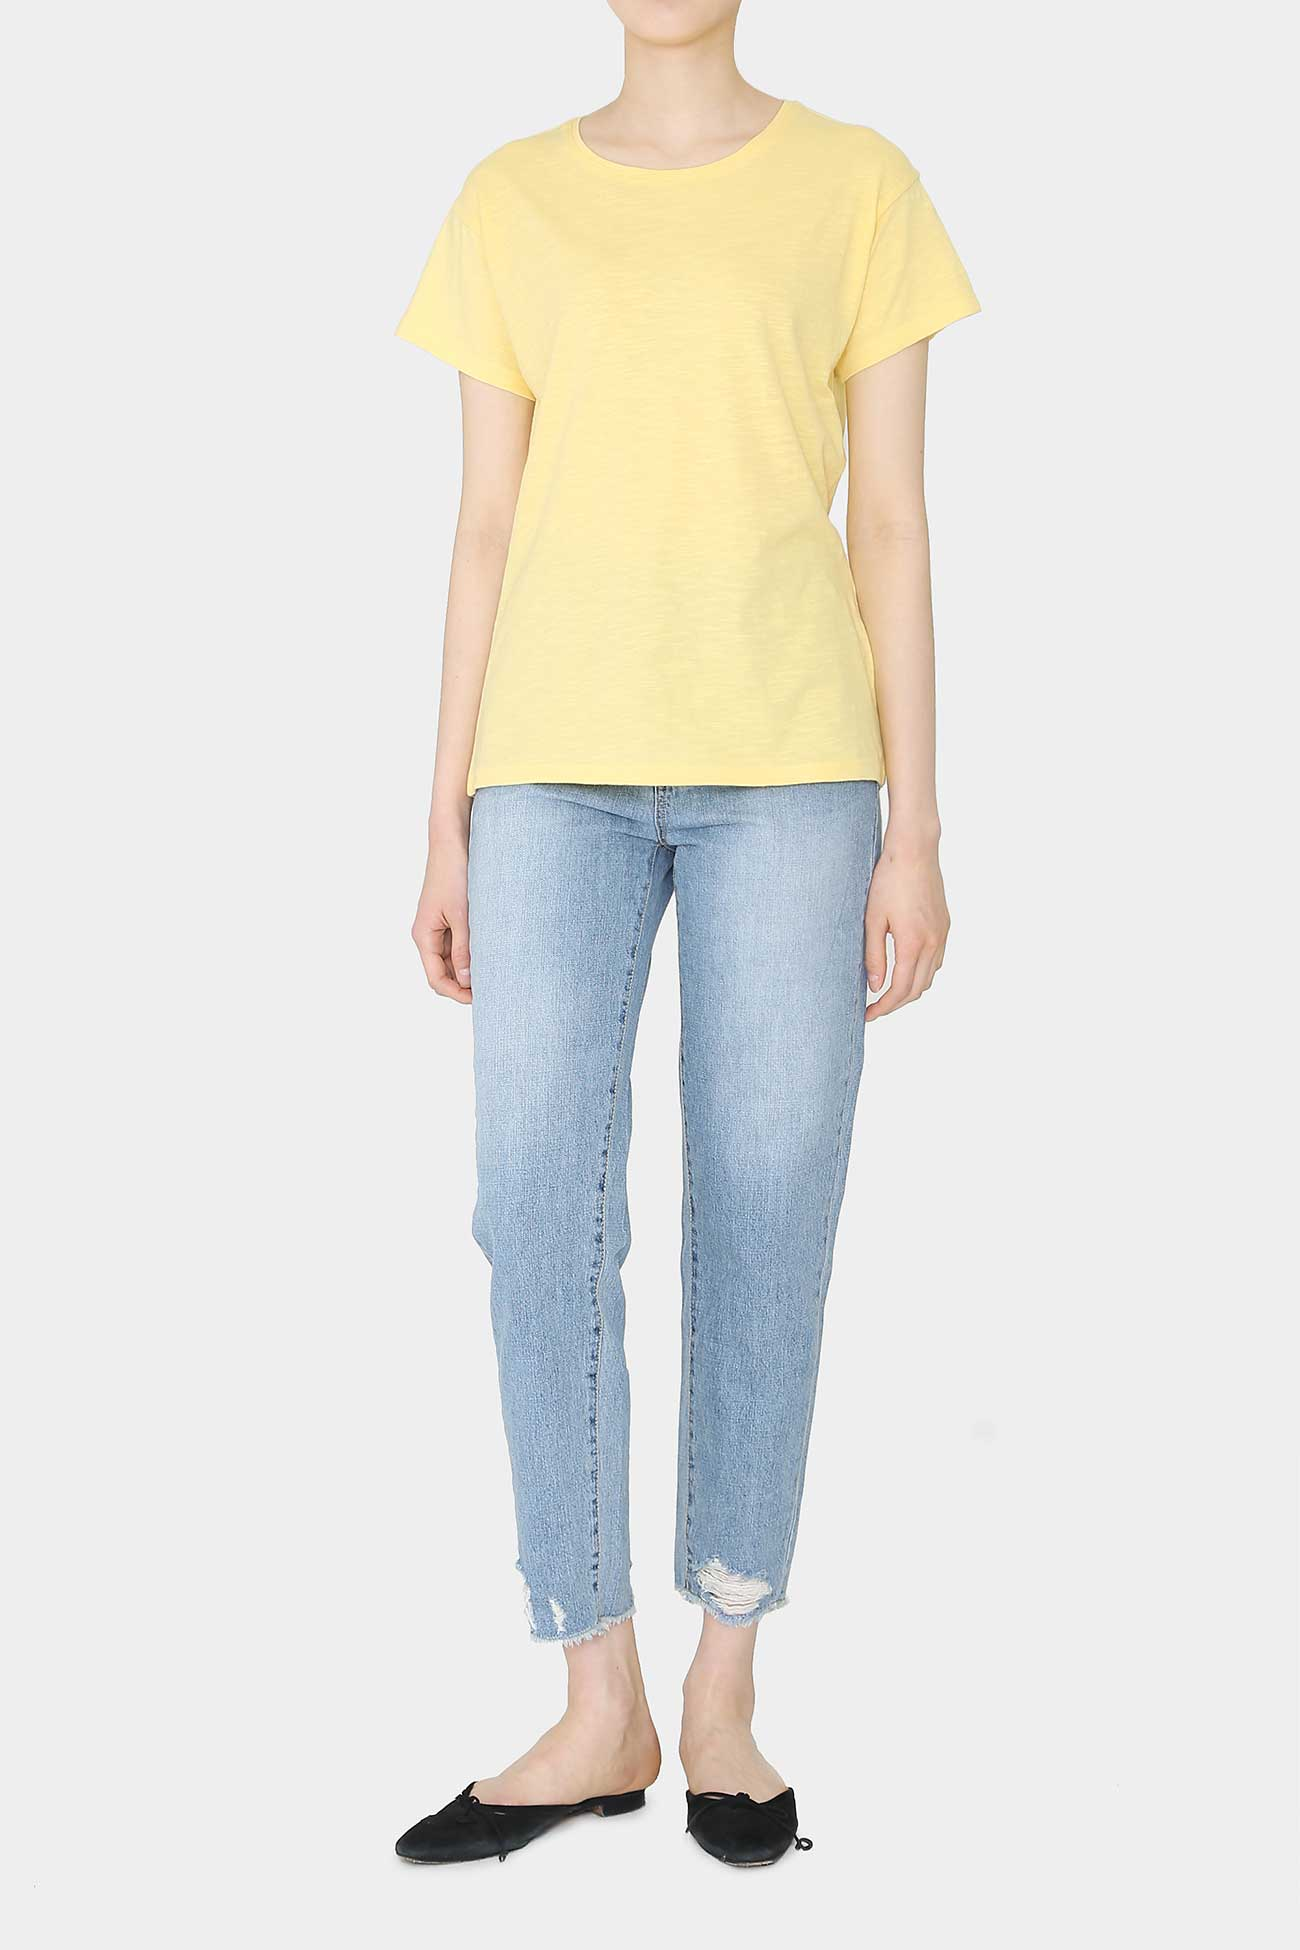 LEMON DONIA SHORTSLEEVE T-SHIRT